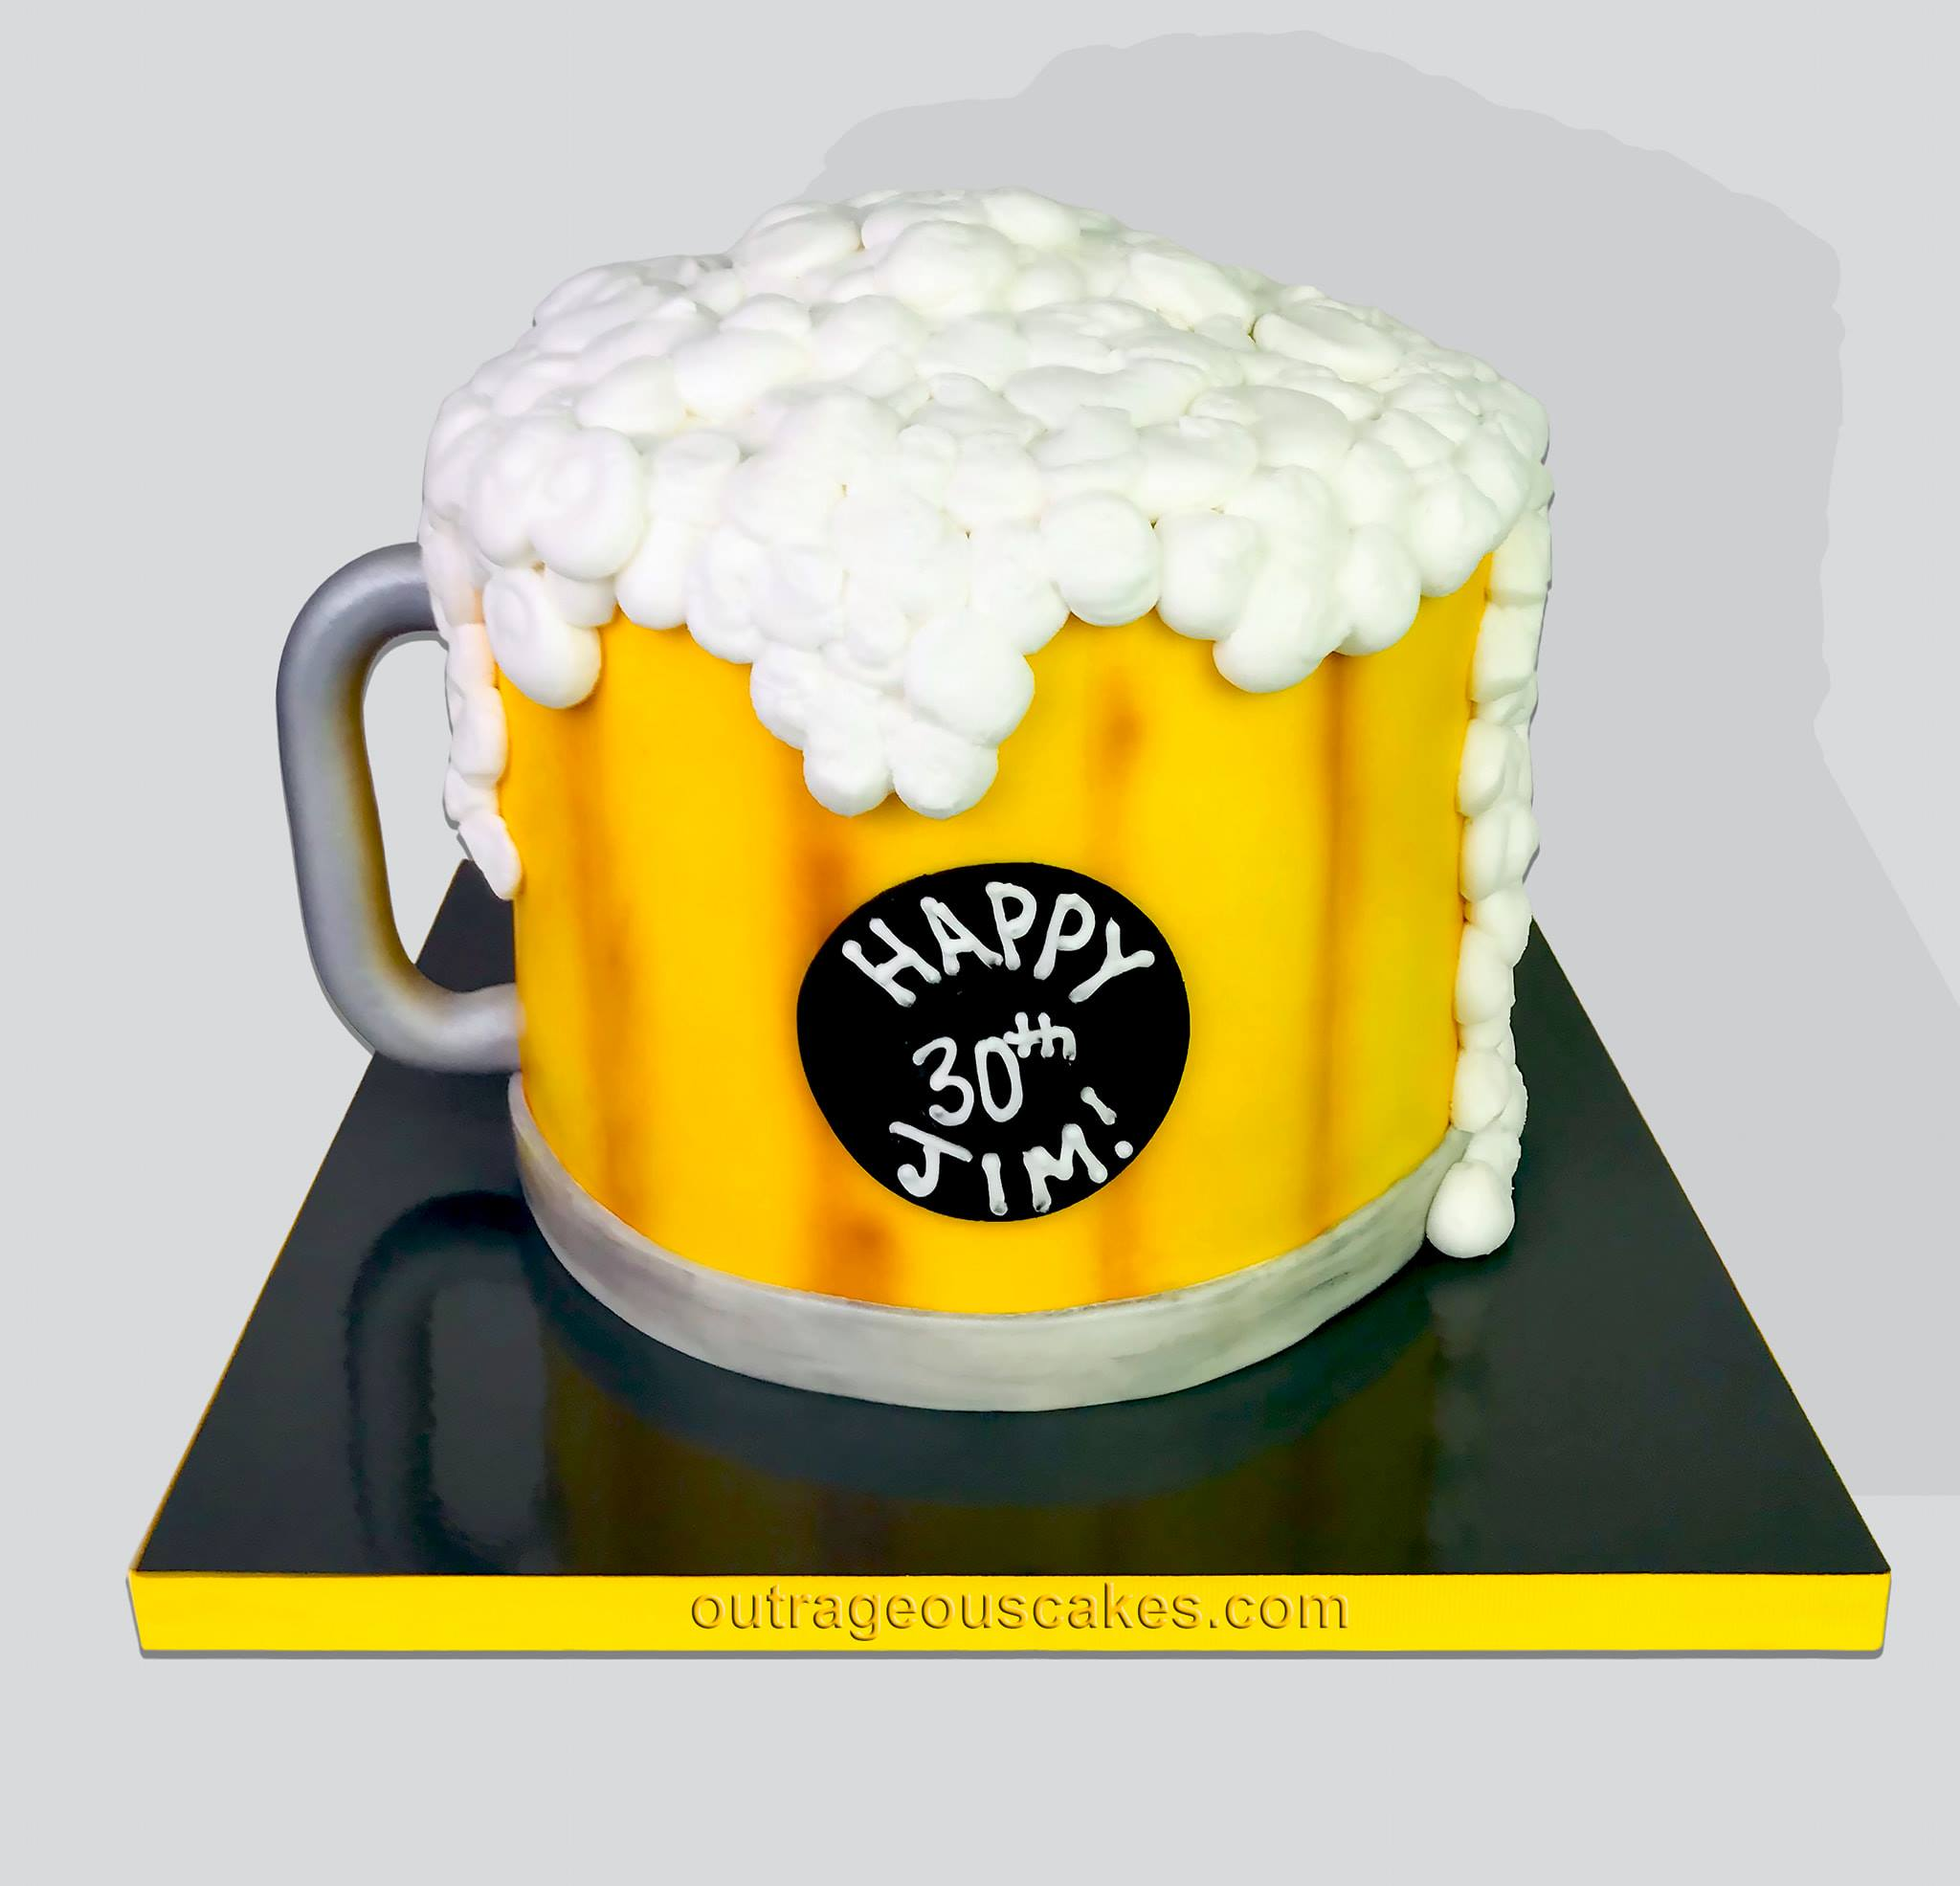 Cartoon Style Beer Mug Cake